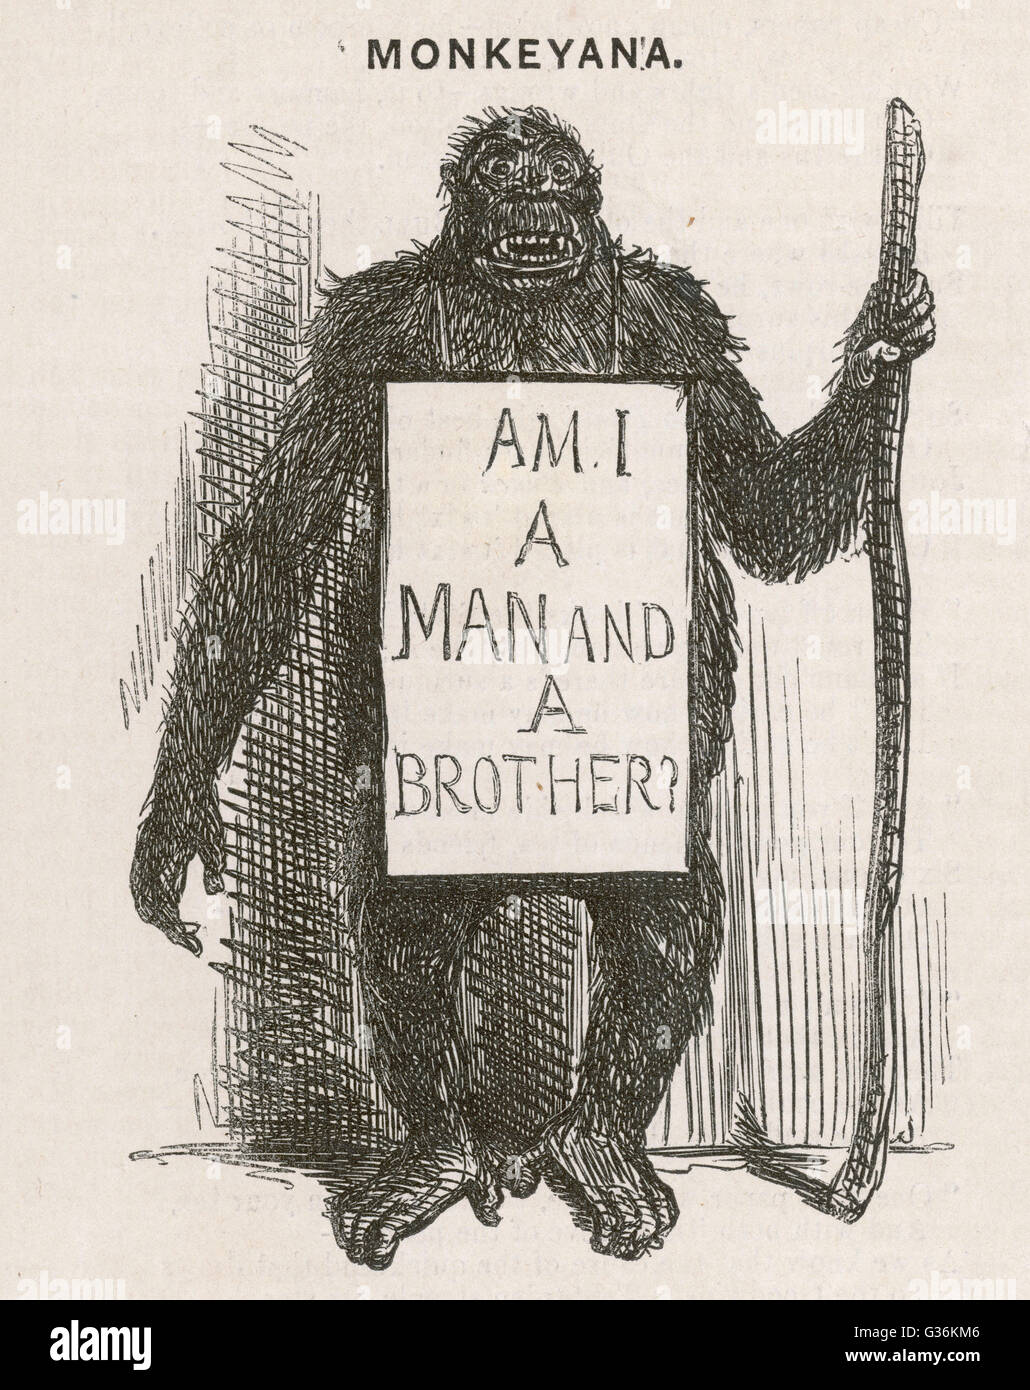 Satire of Charles Darwin. His theory of evoution is satirised as Monkeyana - Am I a man and a brother?         Date: - Stock Image